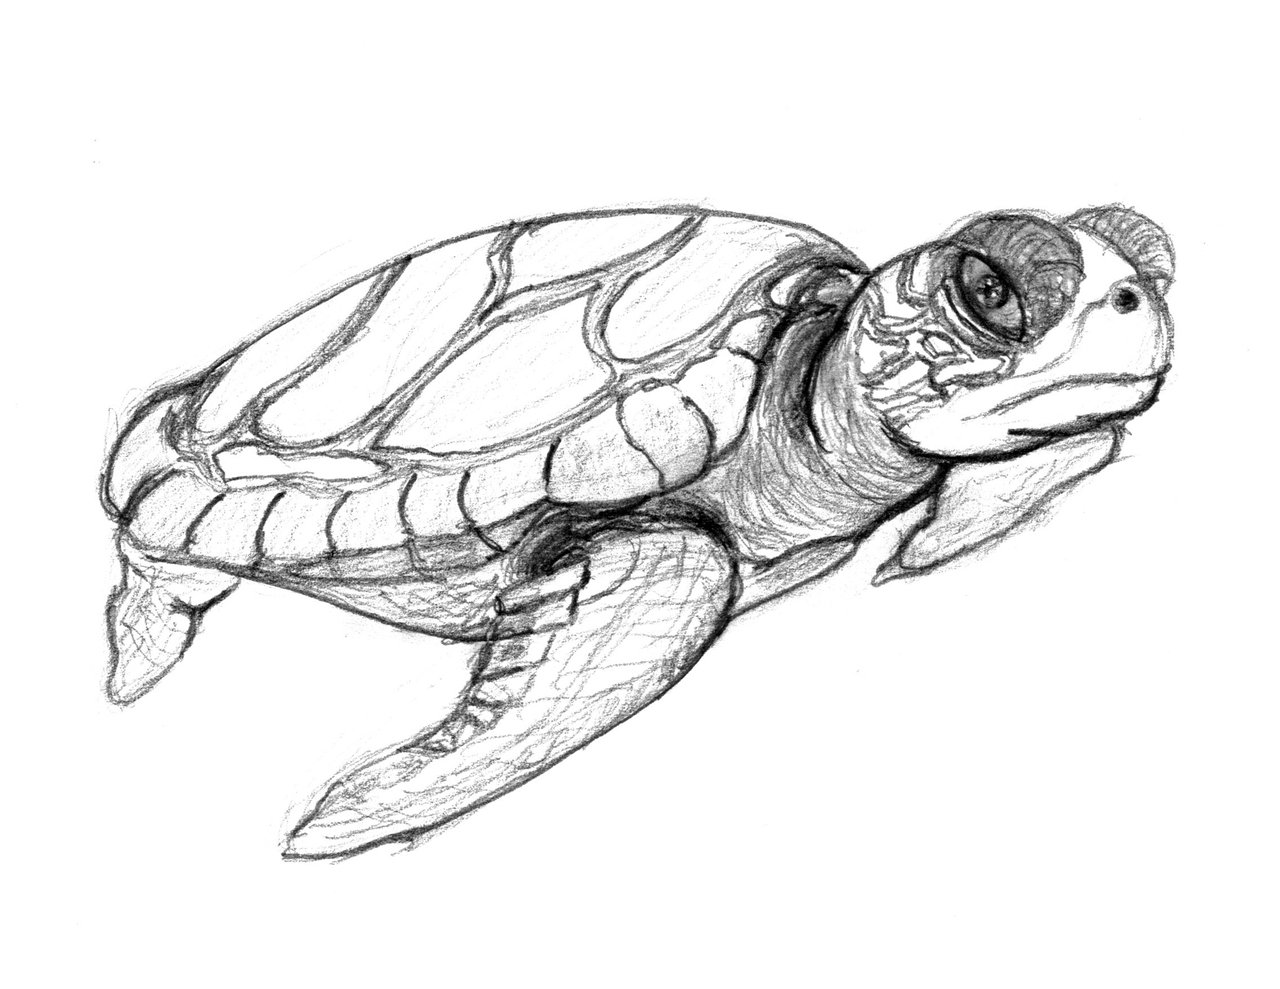 Drawn sea turtle line drawing Printable For Turtle Coloring For